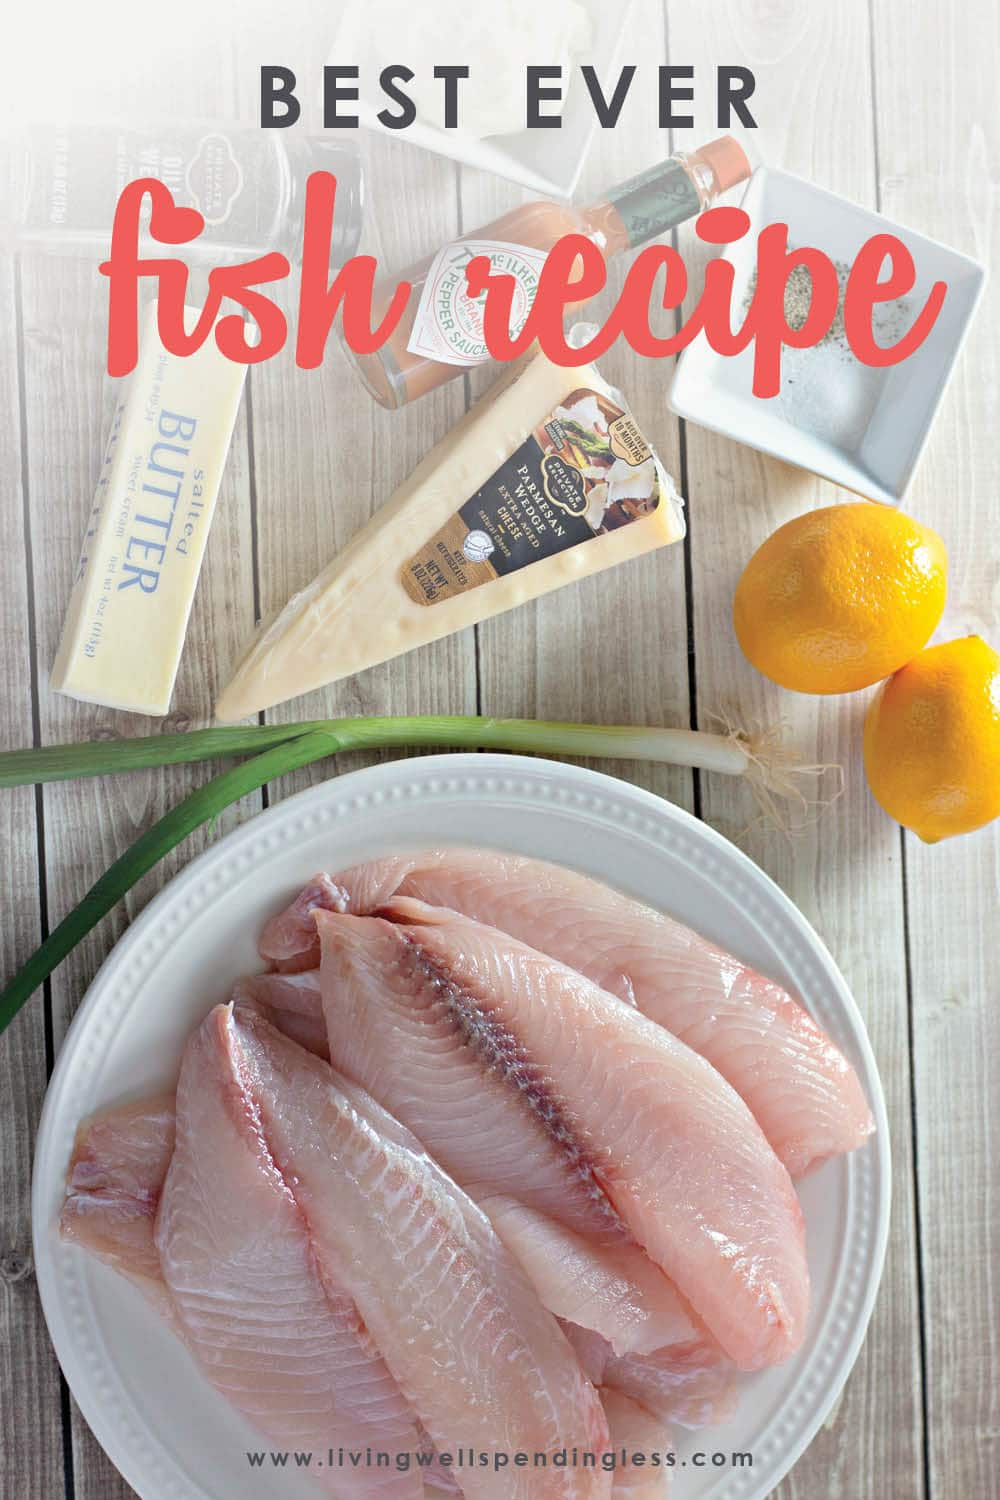 Are you ready to try something new for dinner? This very best fish recipe ever is bursting with savory flavors and is foolproof. Wow your family tonight!